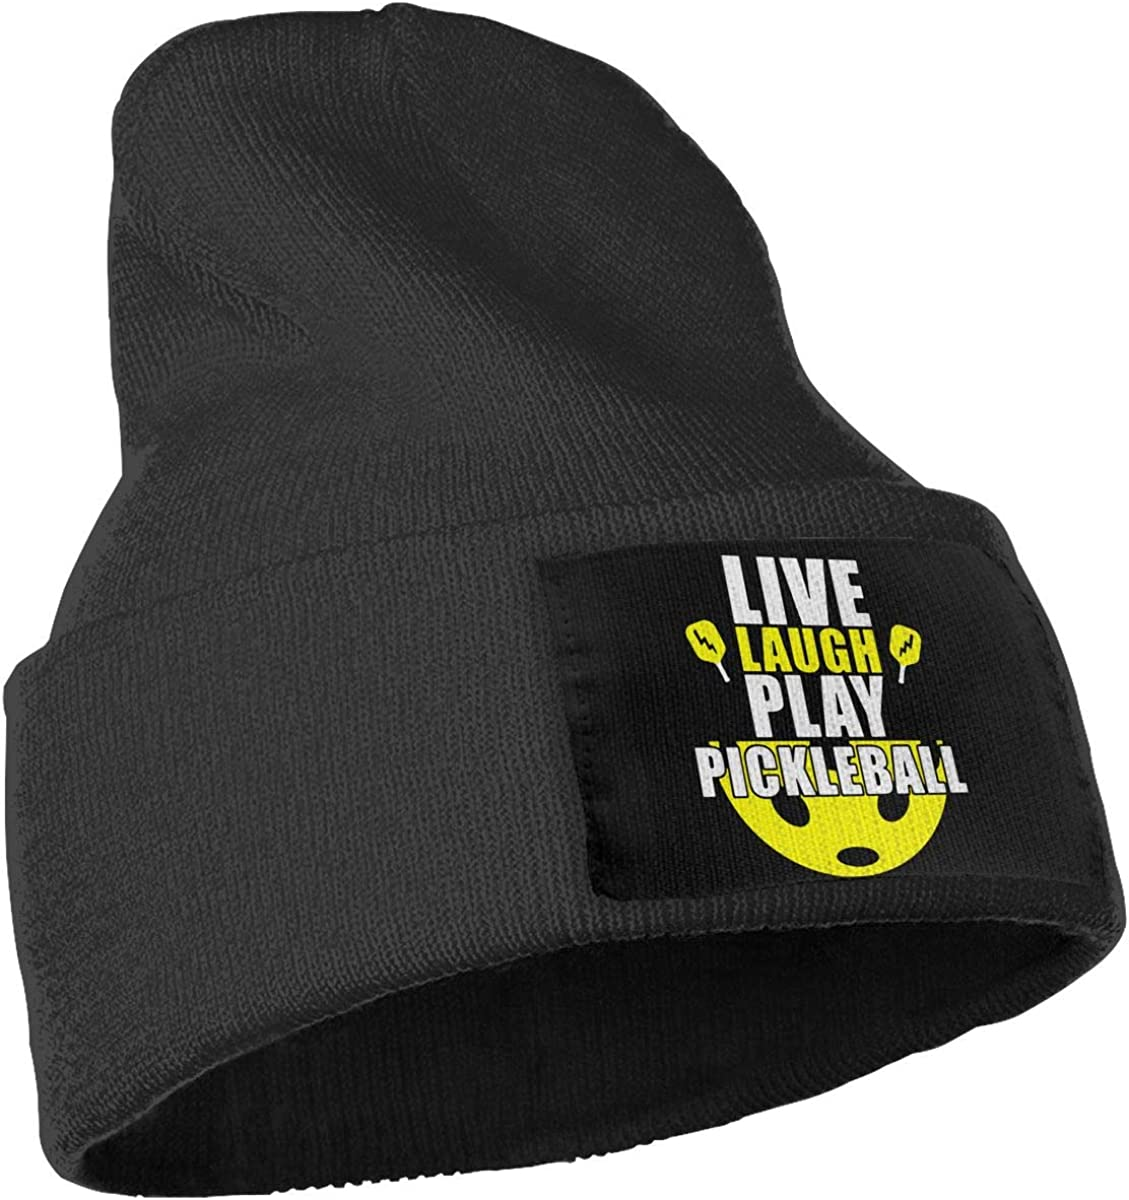 COLLJL-8 Unisex Live Laugh Play Pickleball Outdoor Fashion Knit Beanies Hat Soft Winter Knit Caps